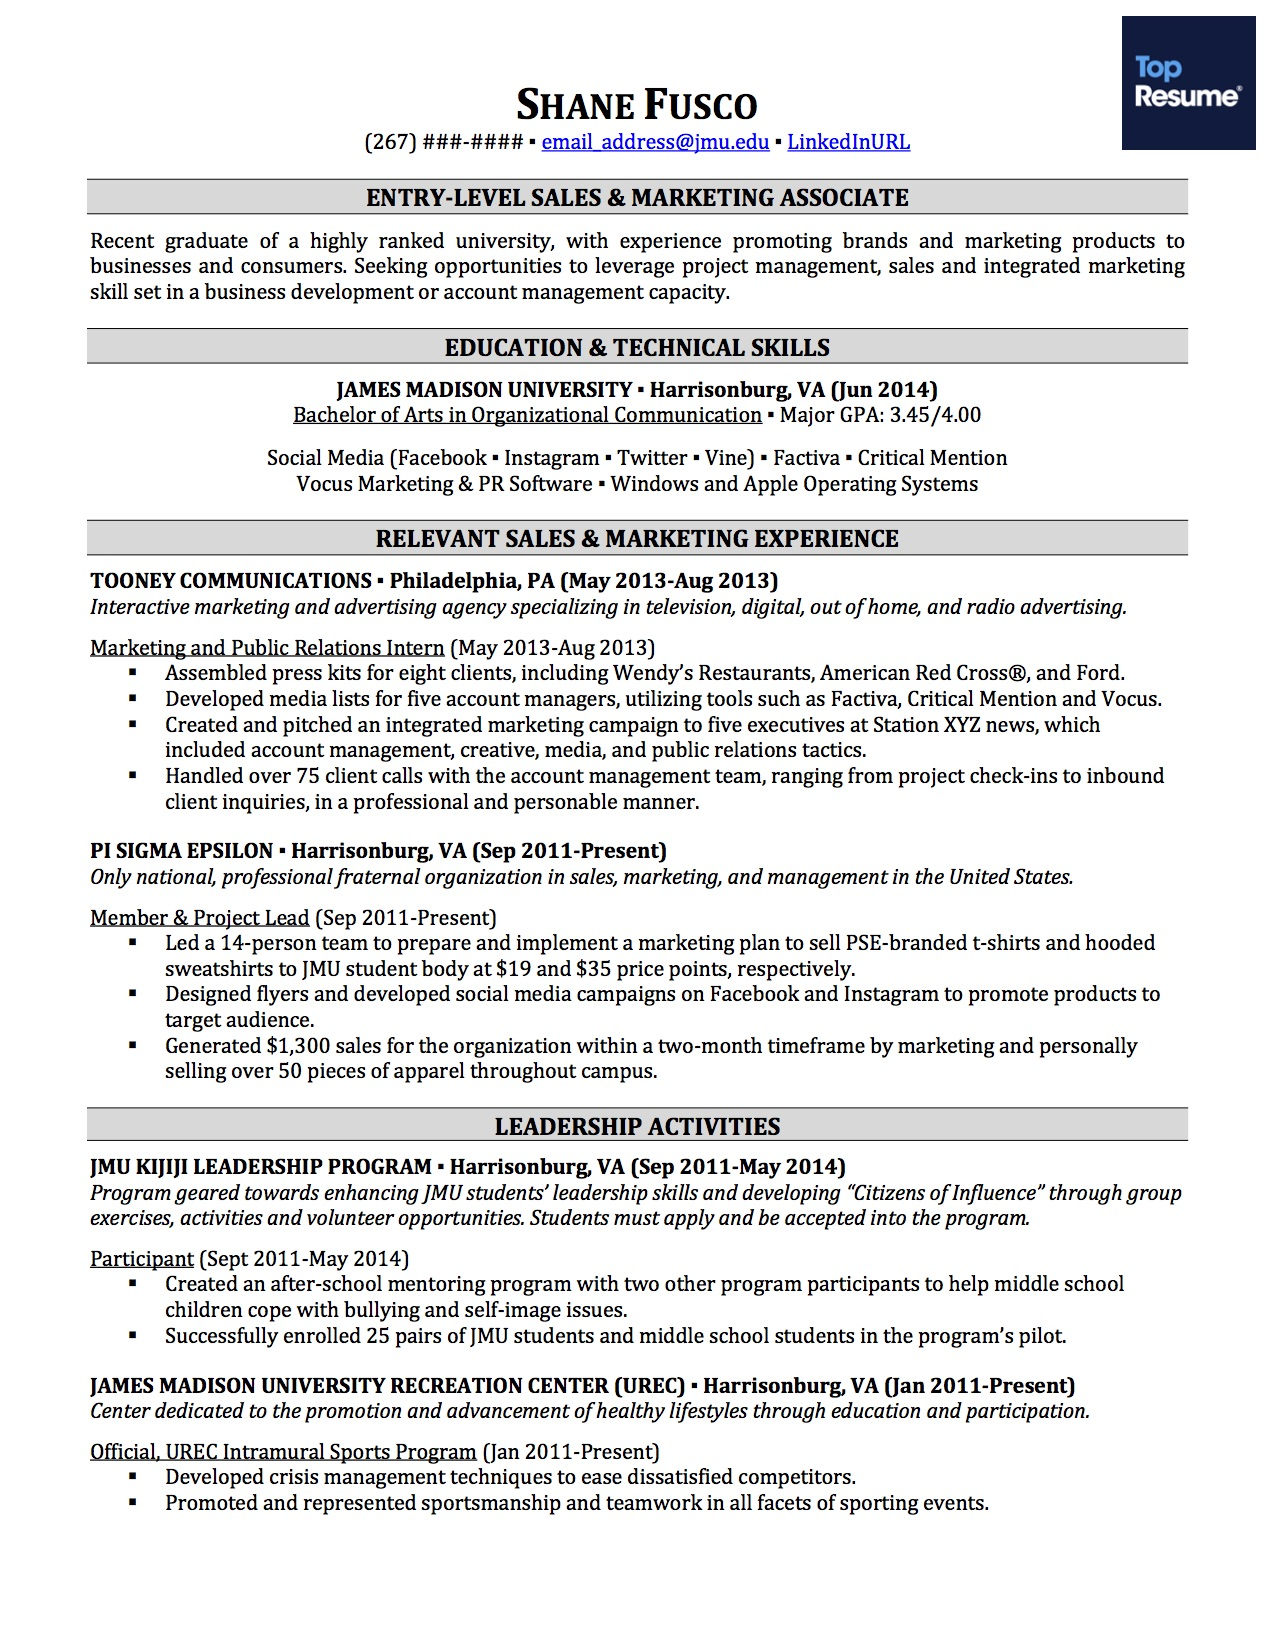 resume template for someone with no work experience - how to write a resume with no job experience topresume